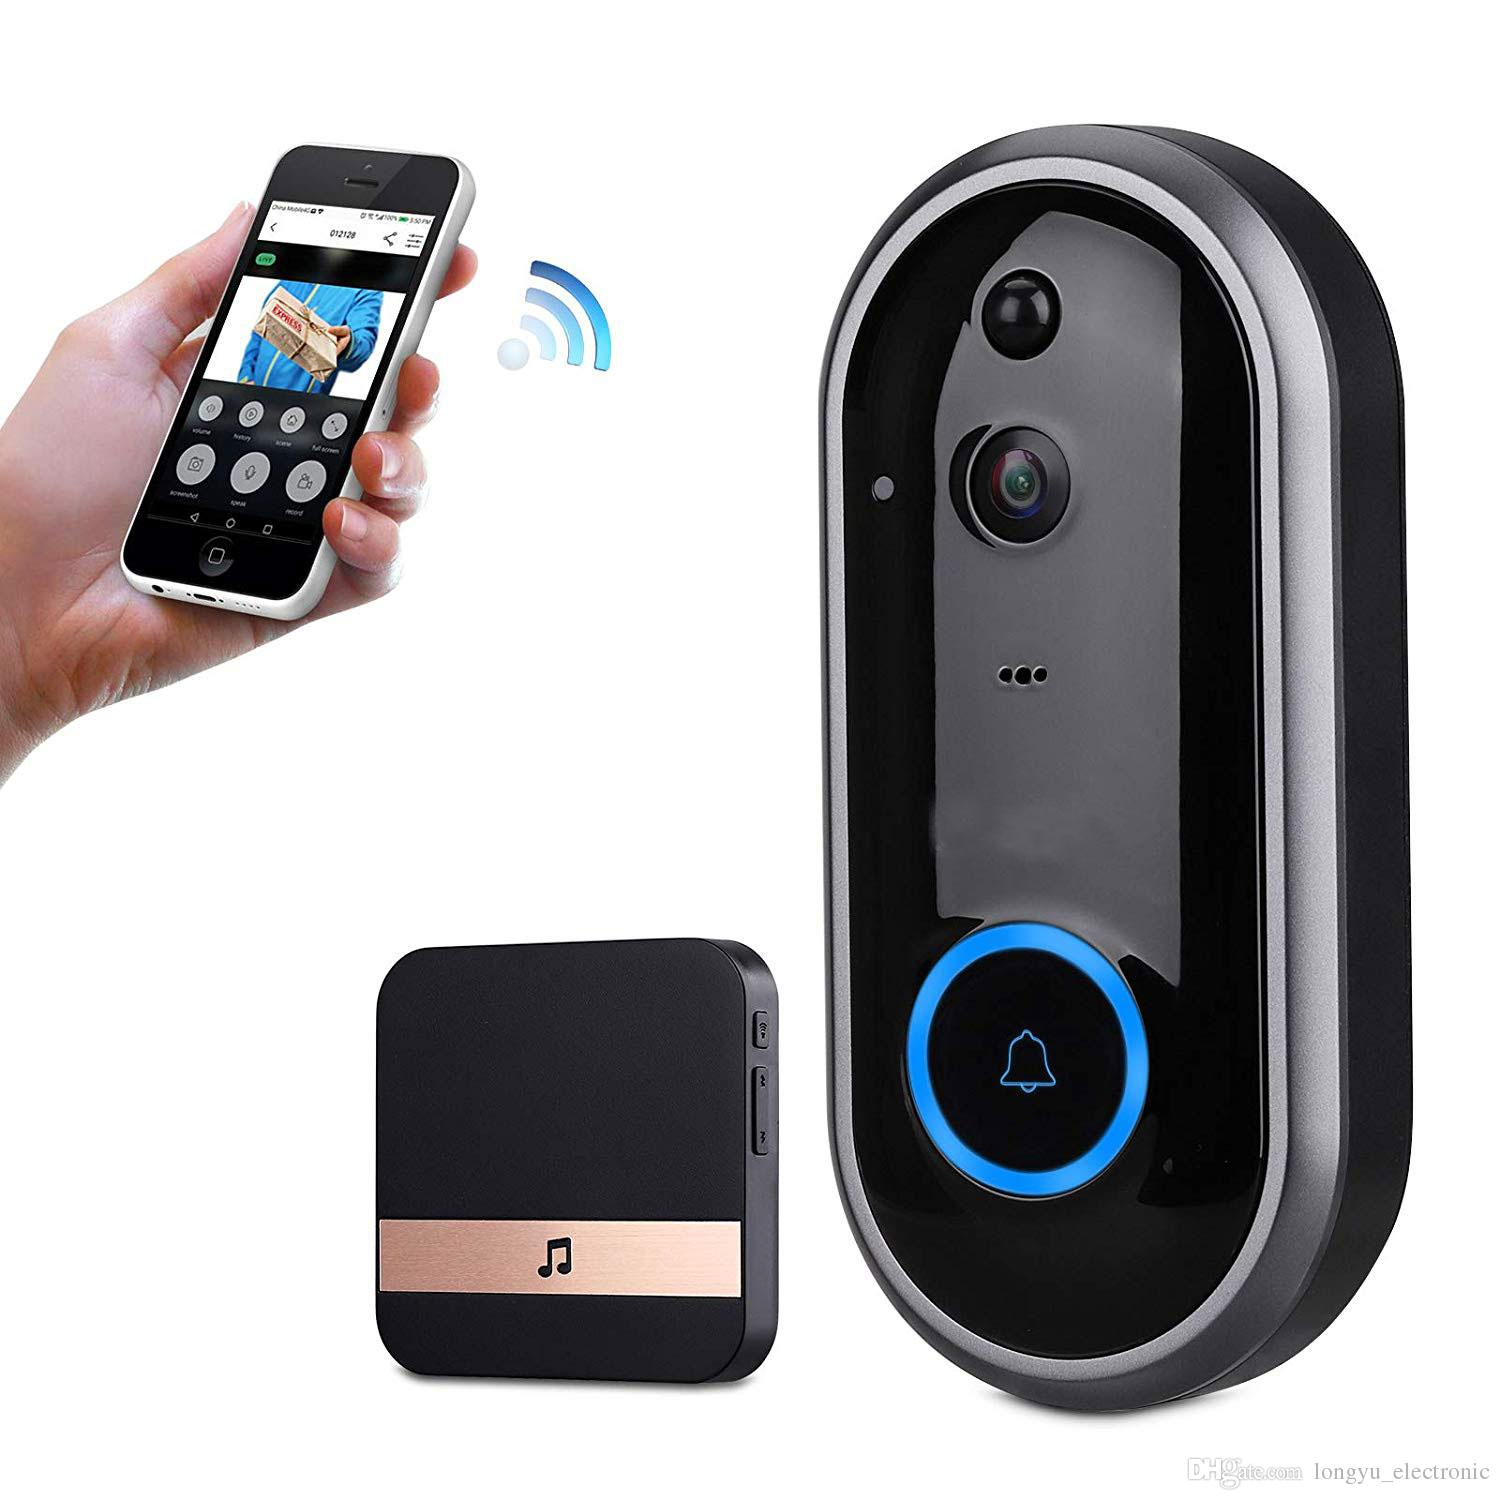 61a8572960b 2019 New Smart Video Doorbell Wireless Home Security Camera With Chime